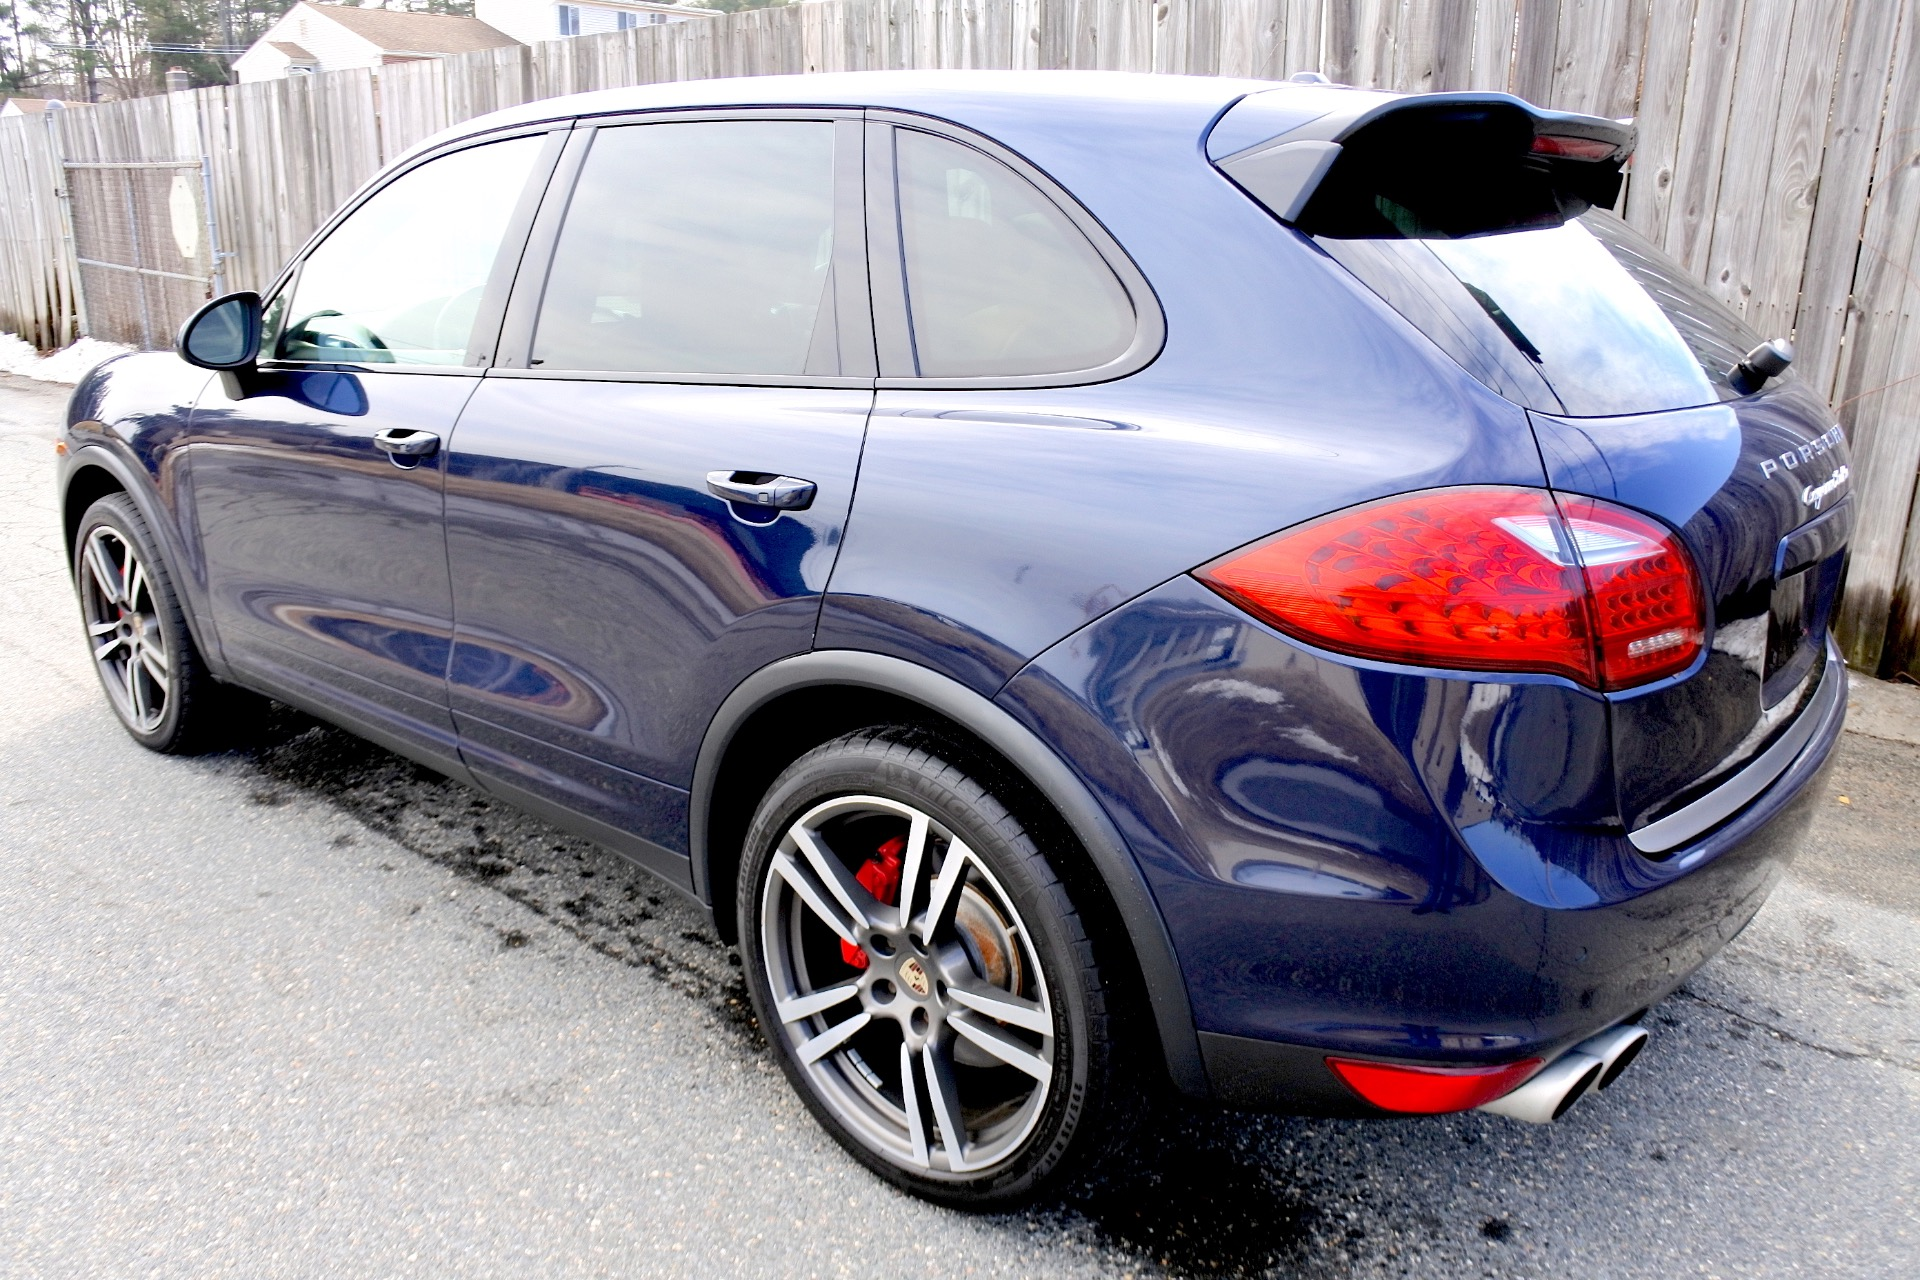 Used 2012 Porsche Cayenne Turbo AWD Used 2012 Porsche Cayenne Turbo AWD for sale  at Metro West Motorcars LLC in Shrewsbury MA 3